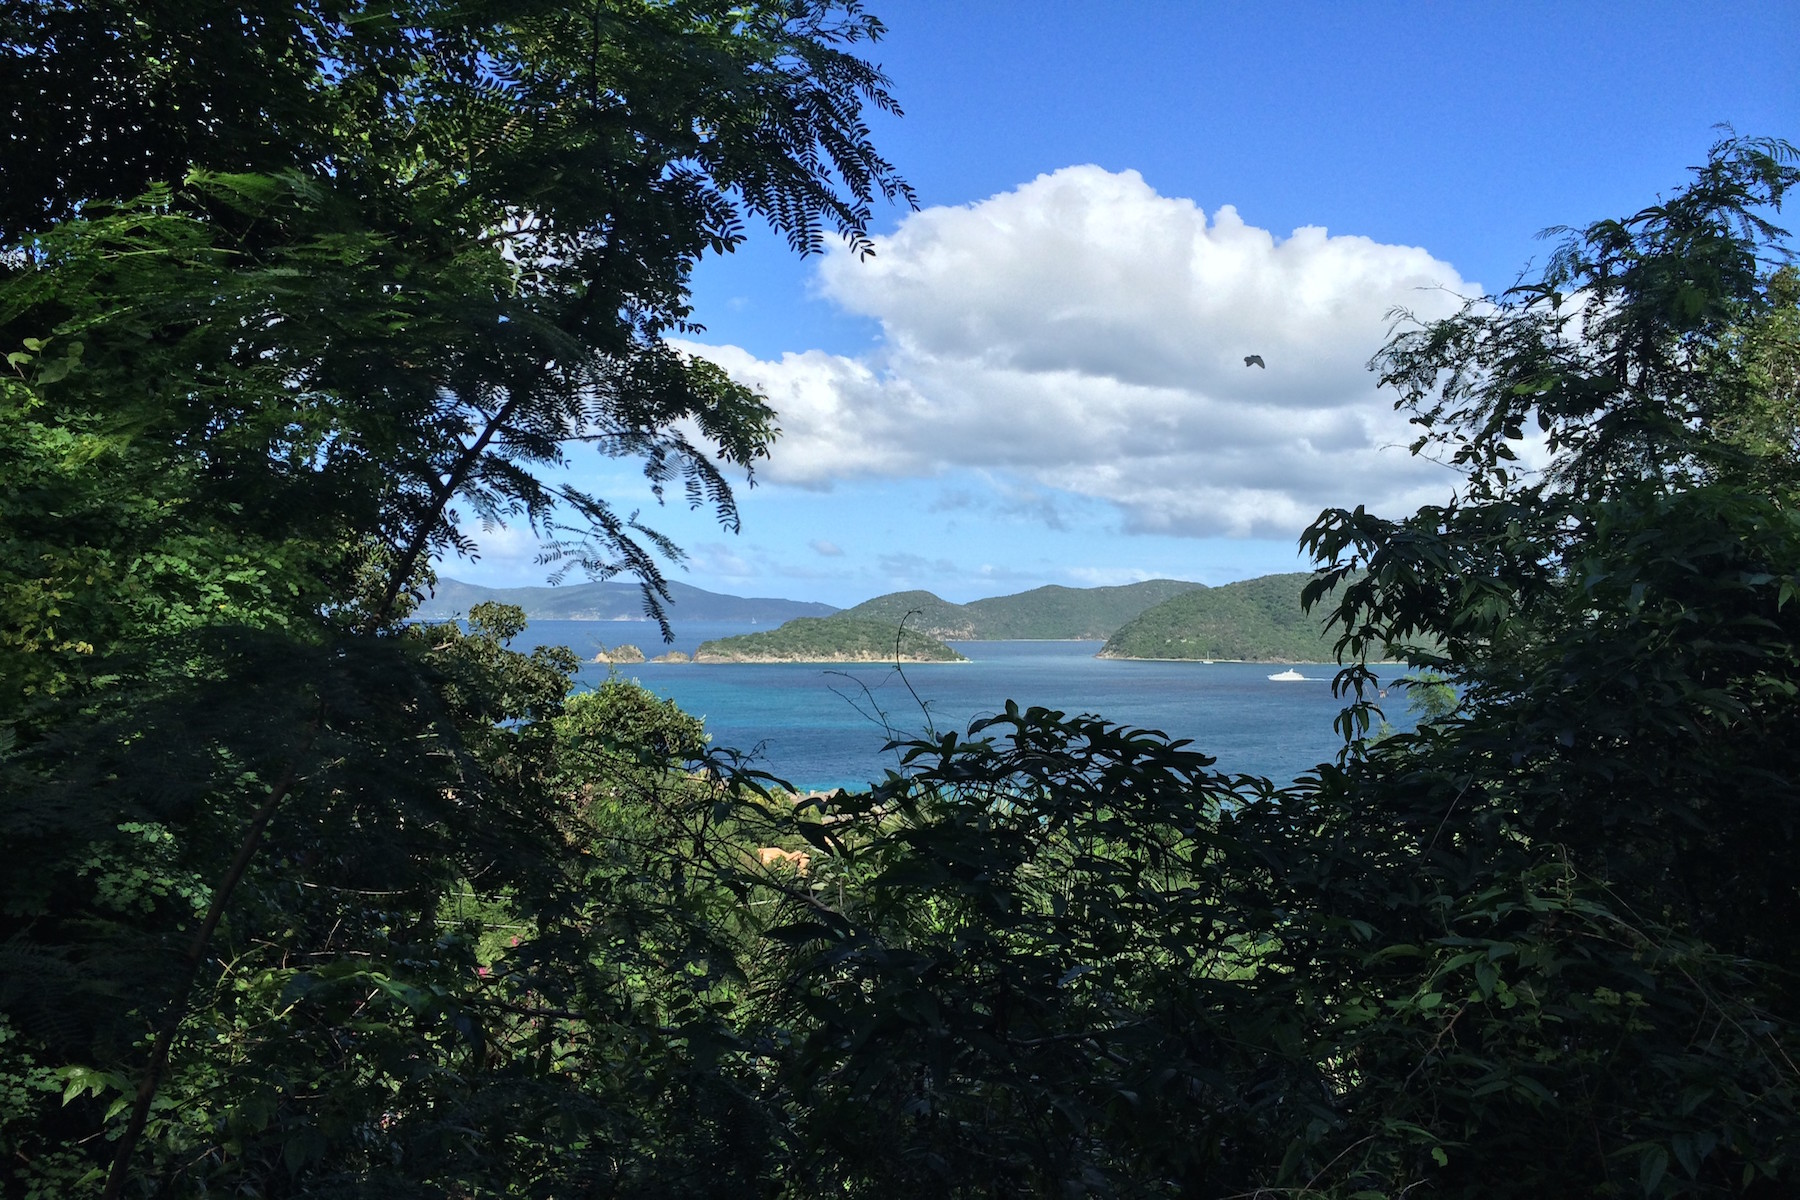 Land for Sale at 7-1 Peter Bay 7-1 Peter Bay St John, Virgin Islands 00830 United States Virgin Islands